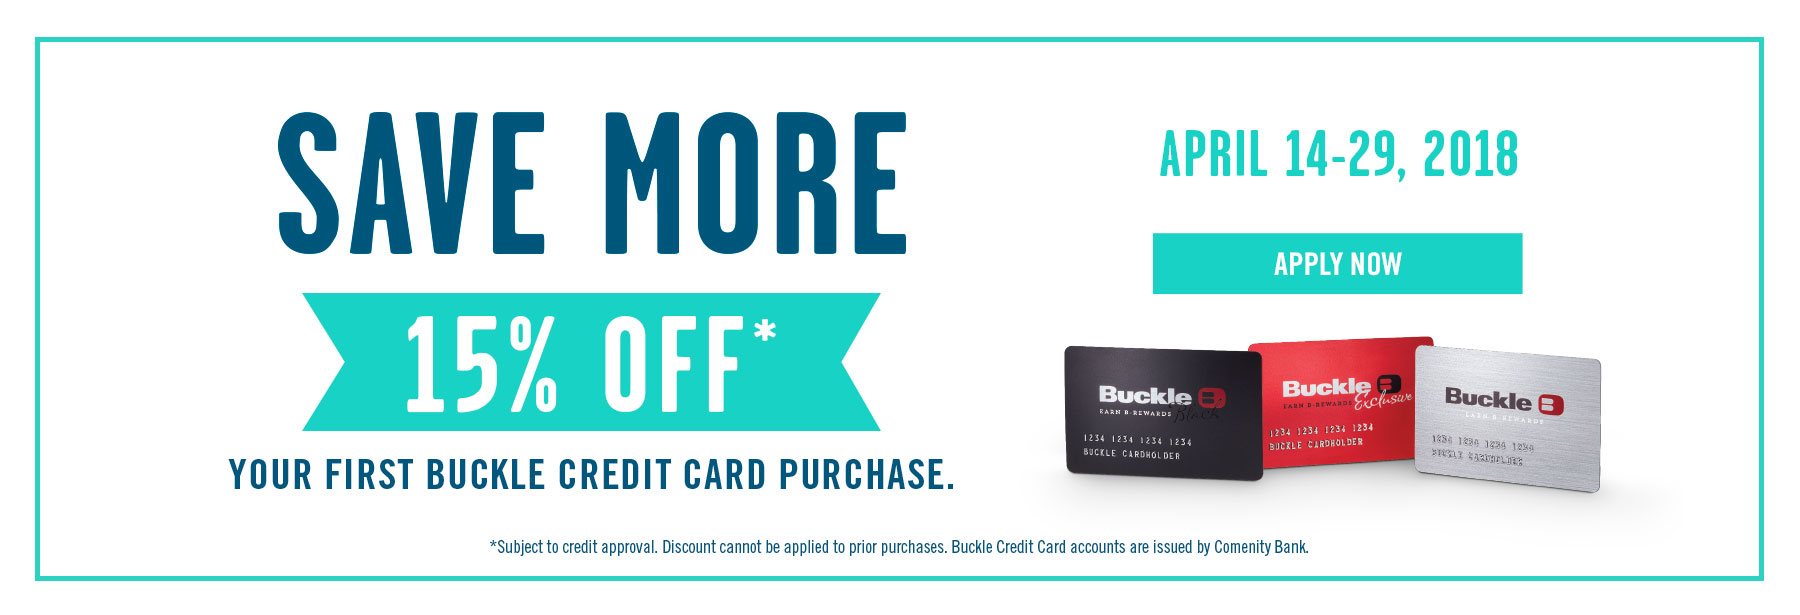 Save More 15% Off Your First Buckle Credit Card Purchase